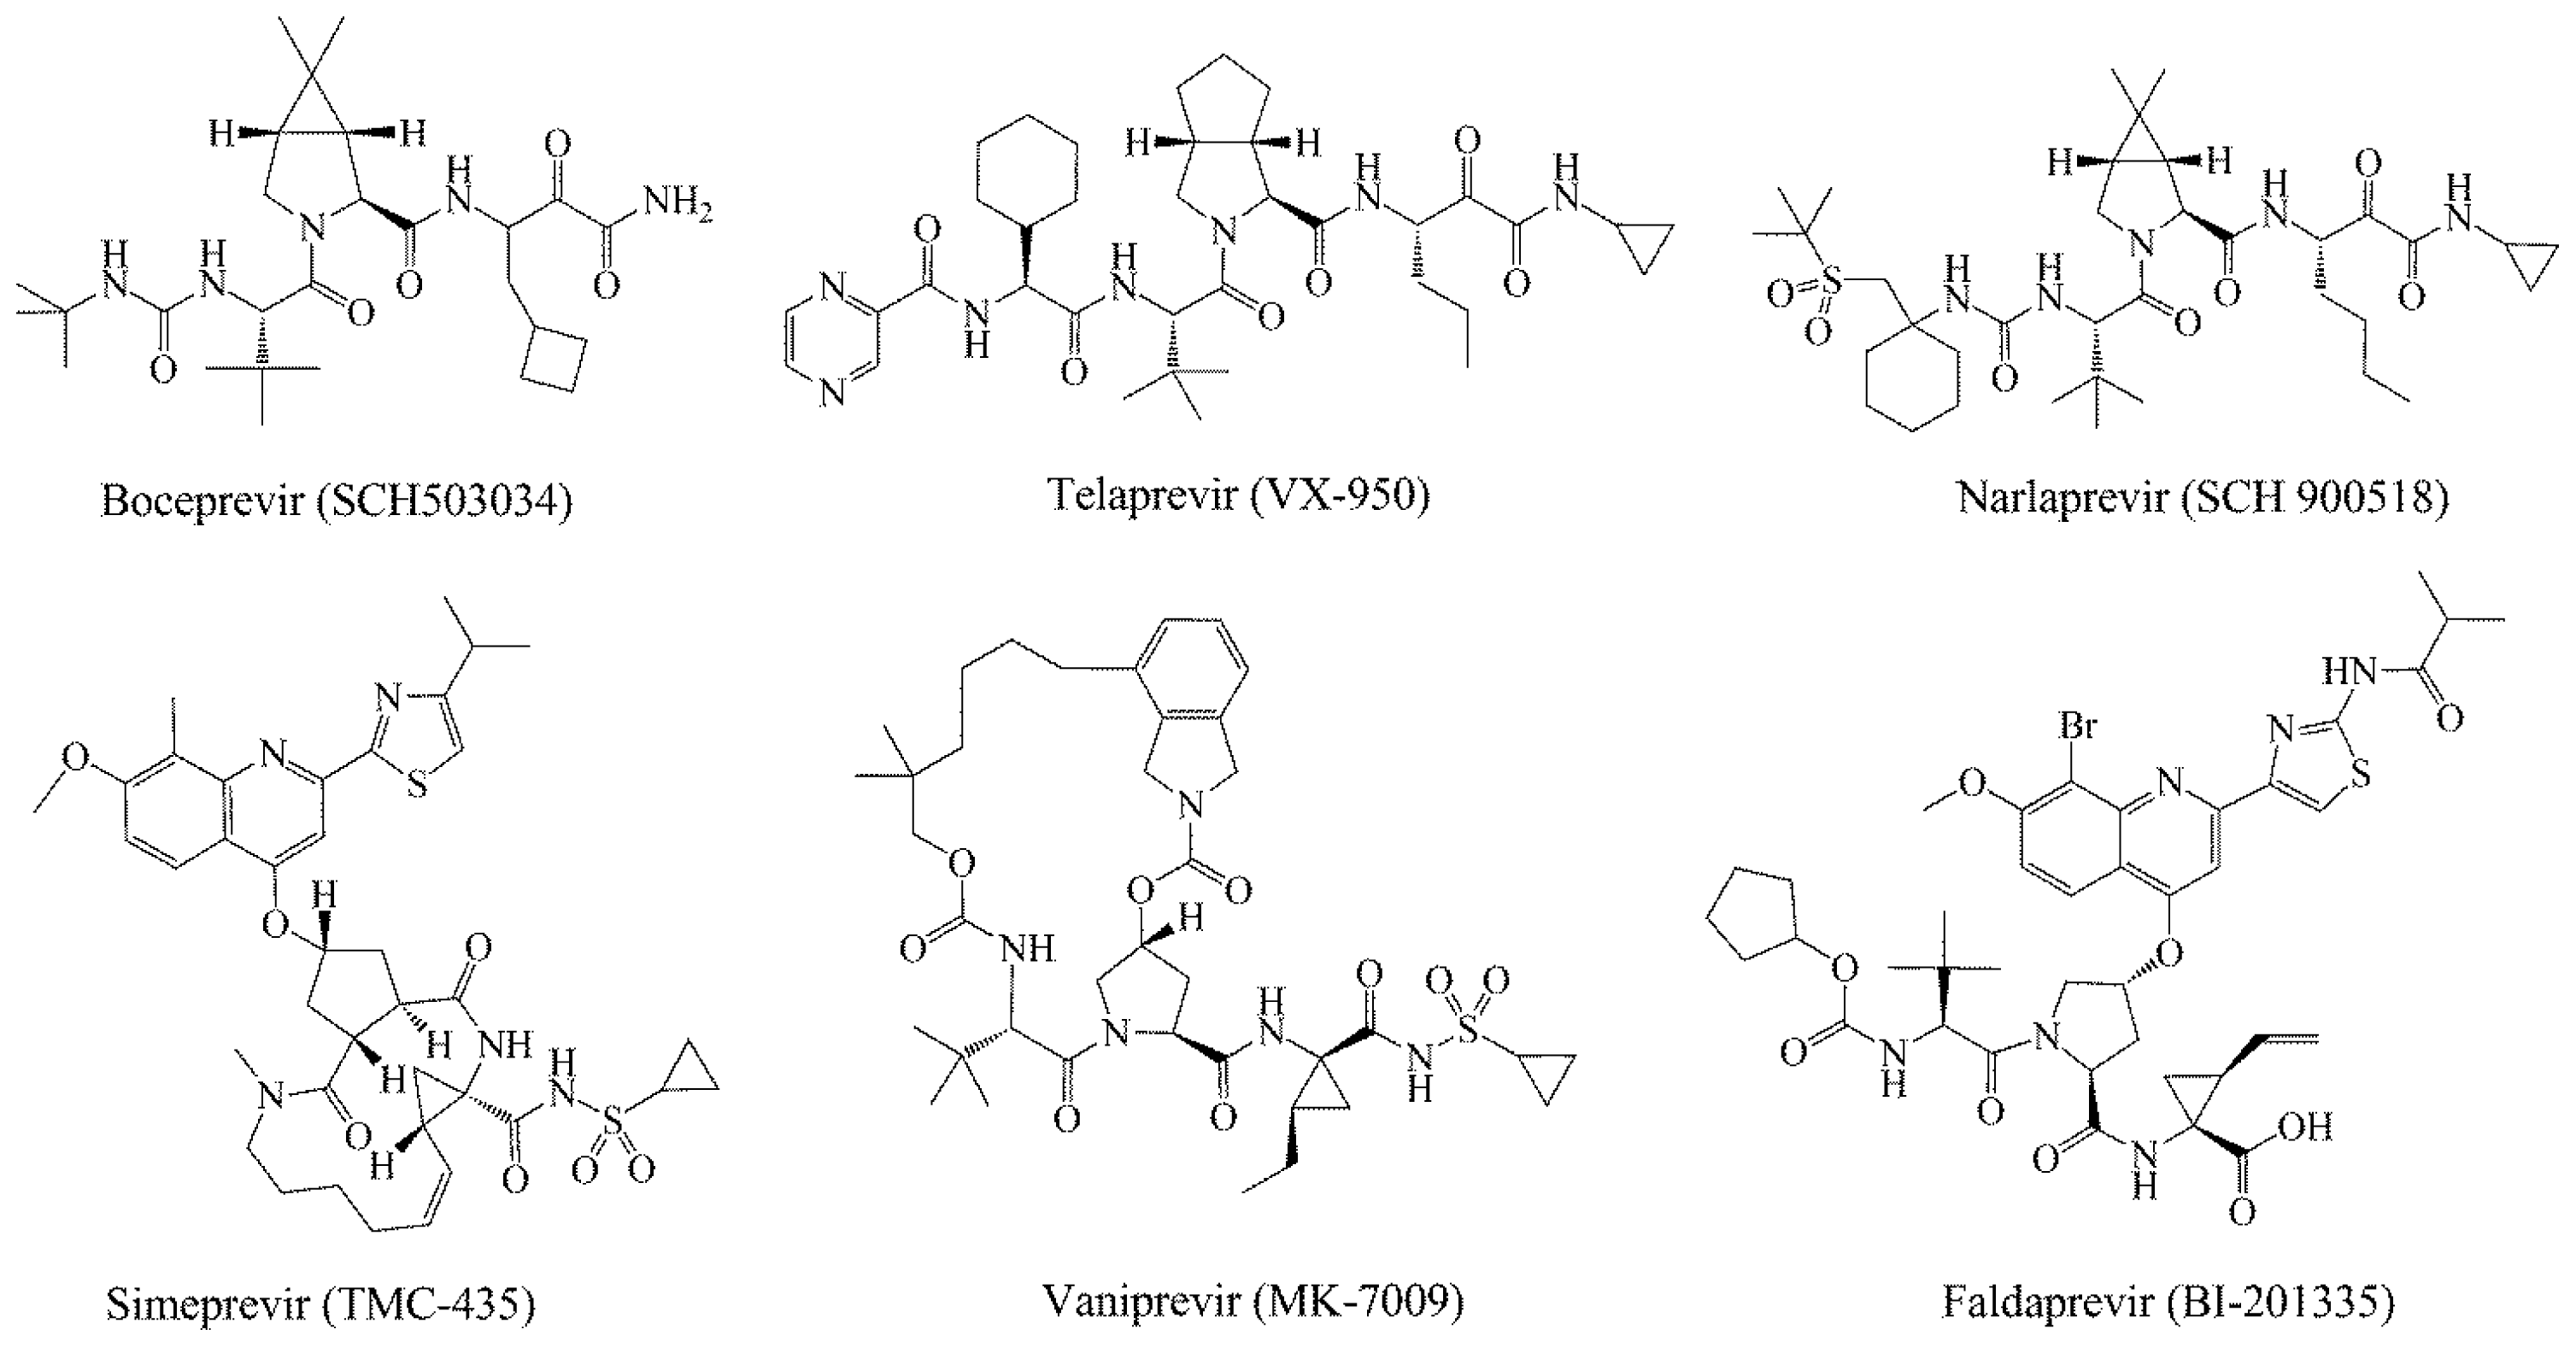 IJMS | Free Full-Text | Identification of Novel Small Molecules as